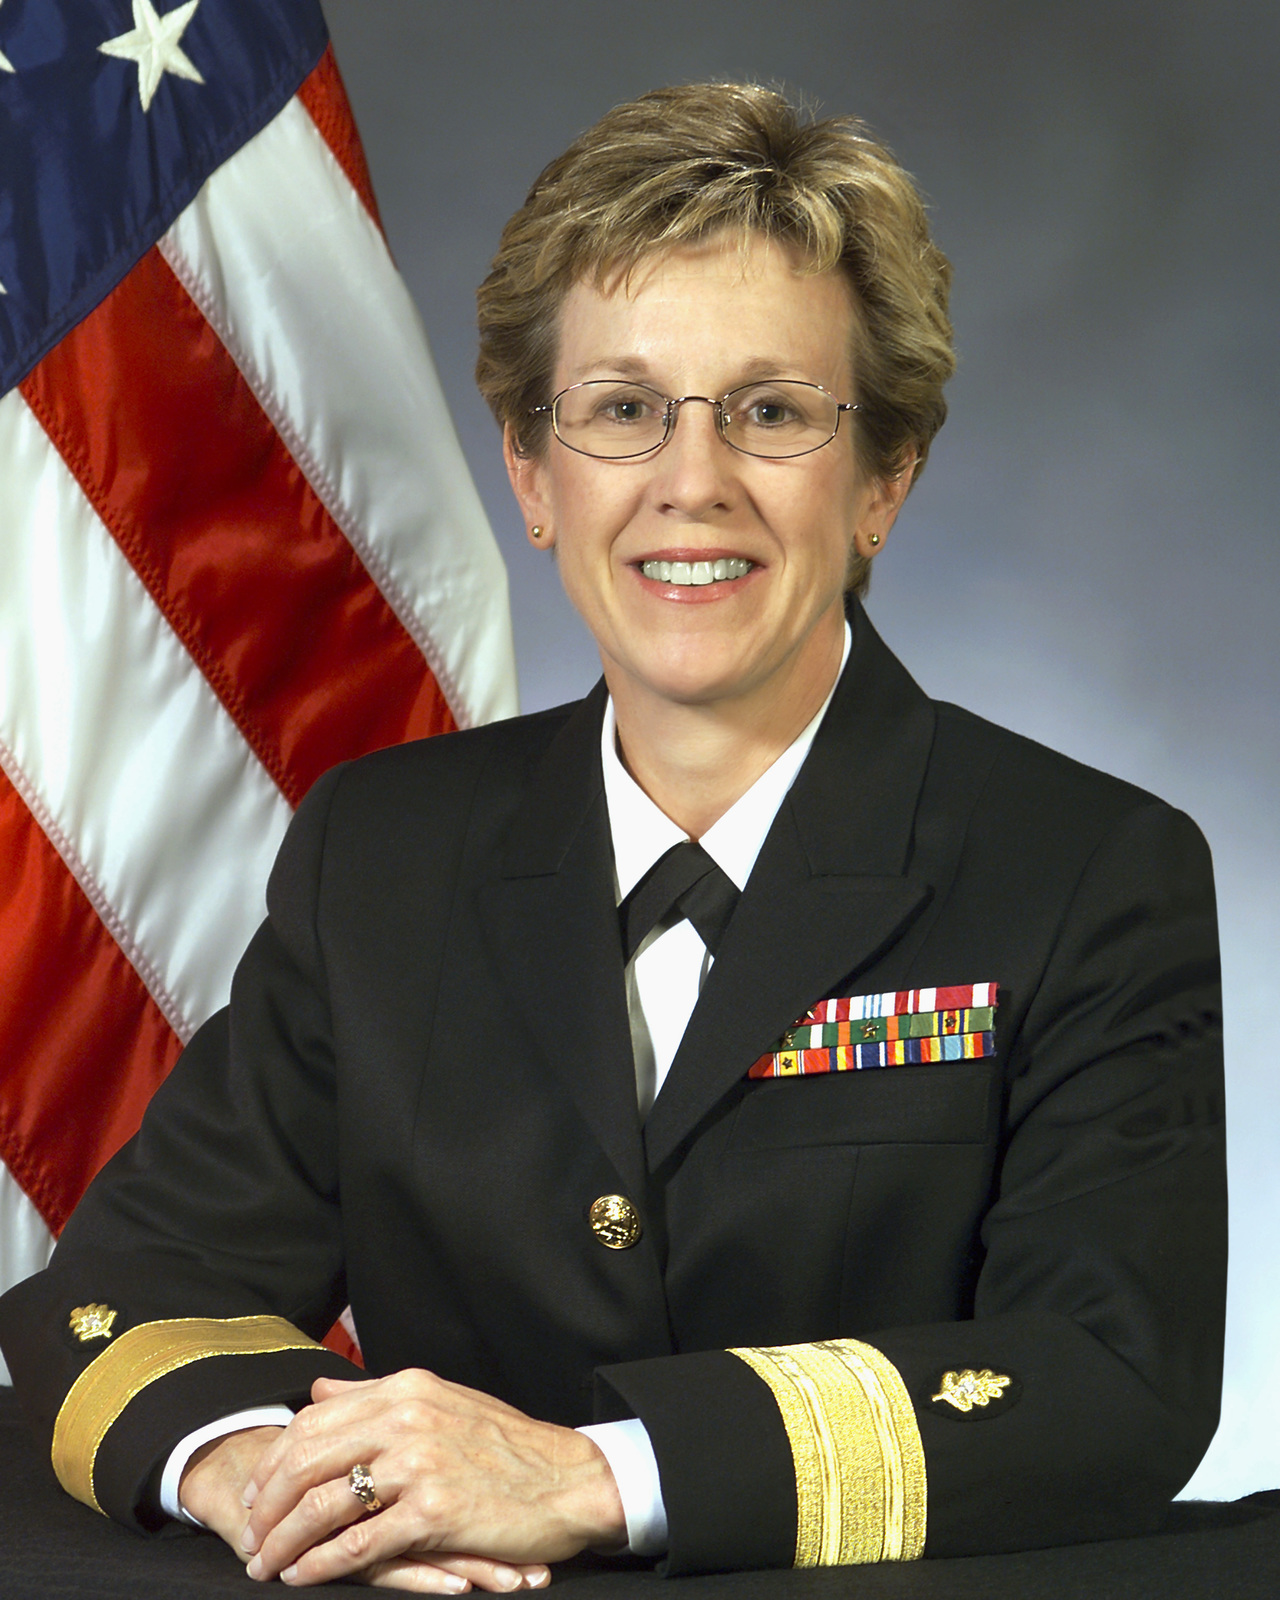 Portrait: US Navy (USN) Rear Admiral (lower half) (RDML) Christine S. Hunter, CHIEF of STAFF, Bureau of Medicine and Surgery. (Uncovered)